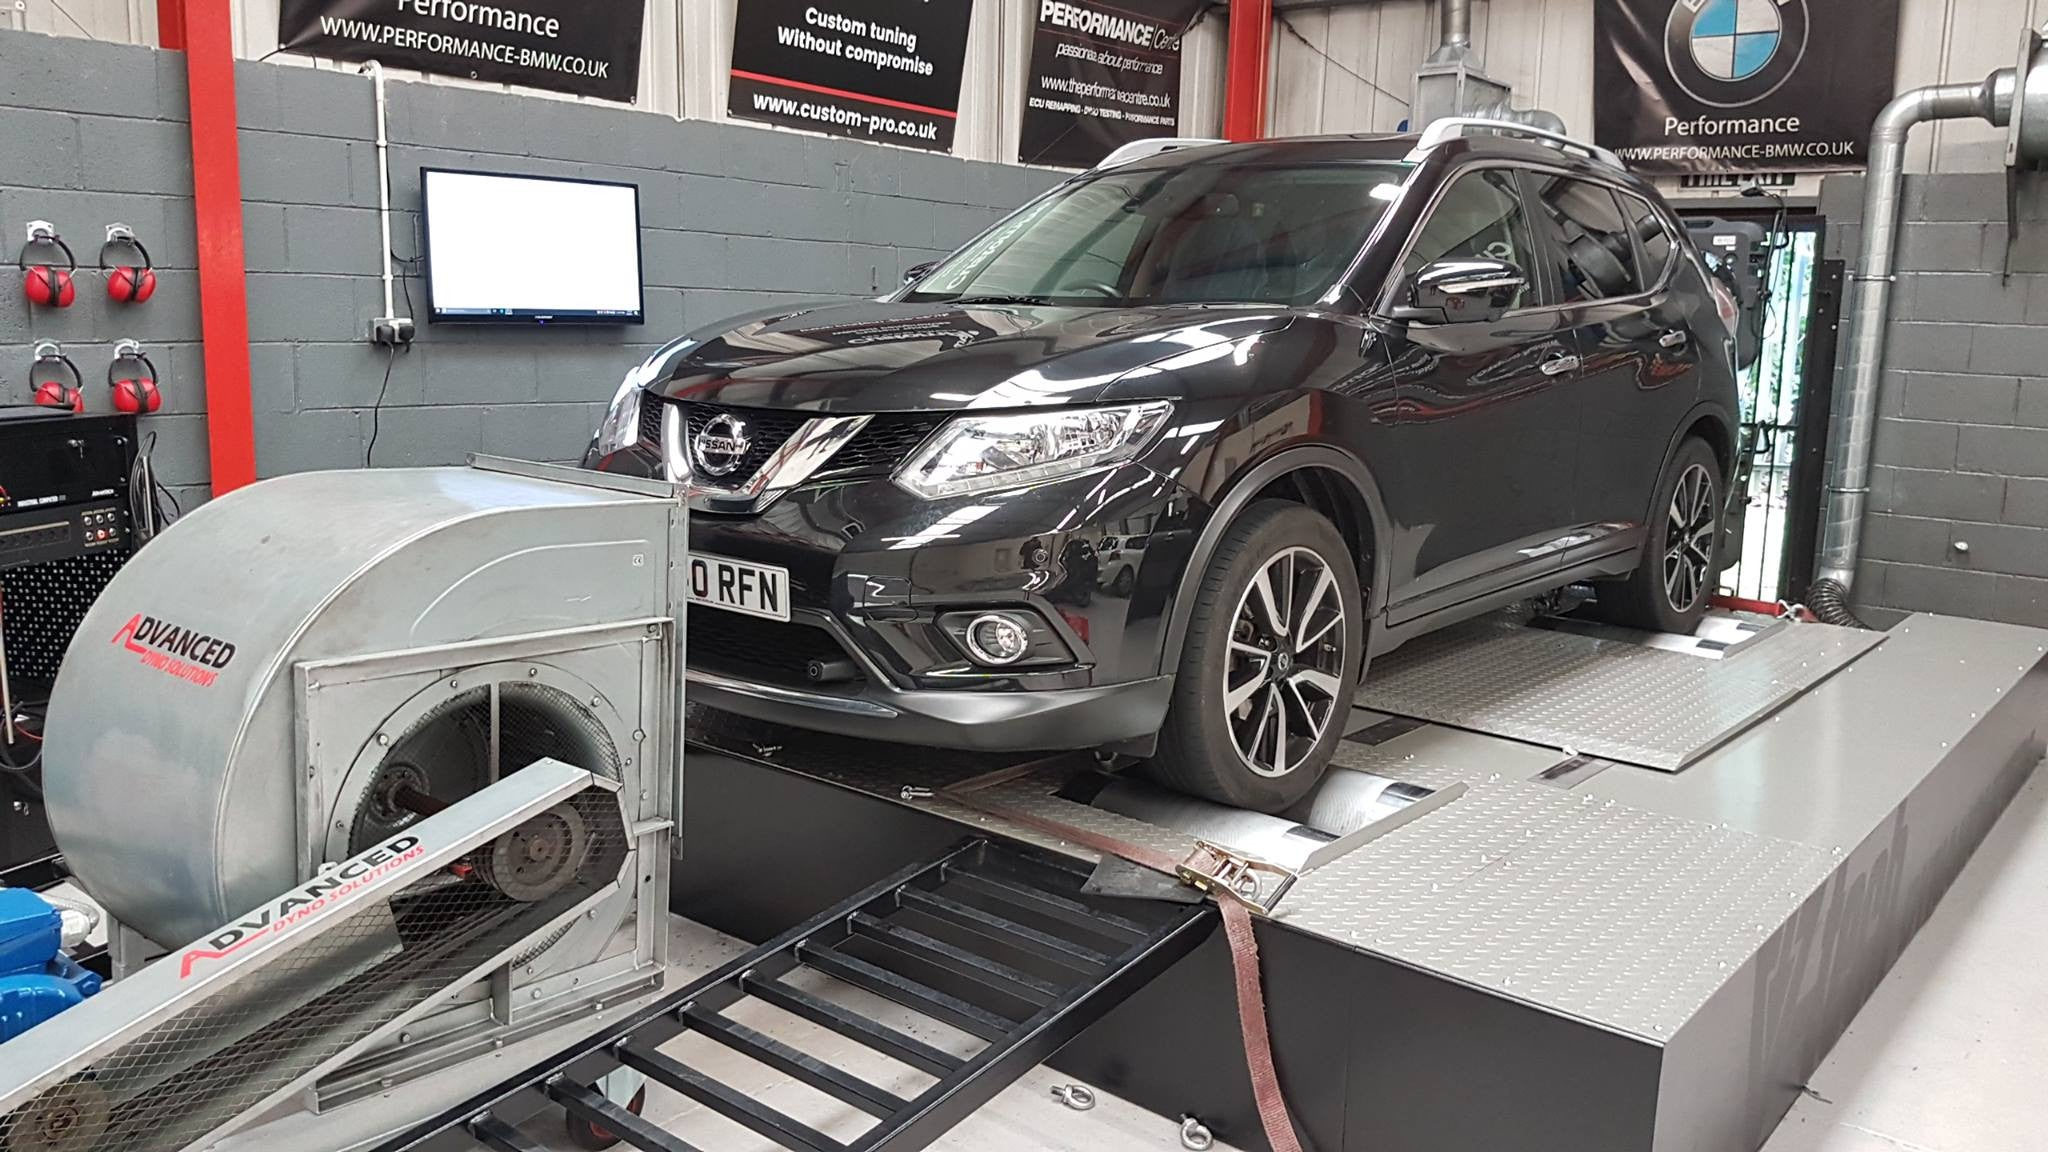 Nissan X-Trail 1.6 DCI - CustomPro remap